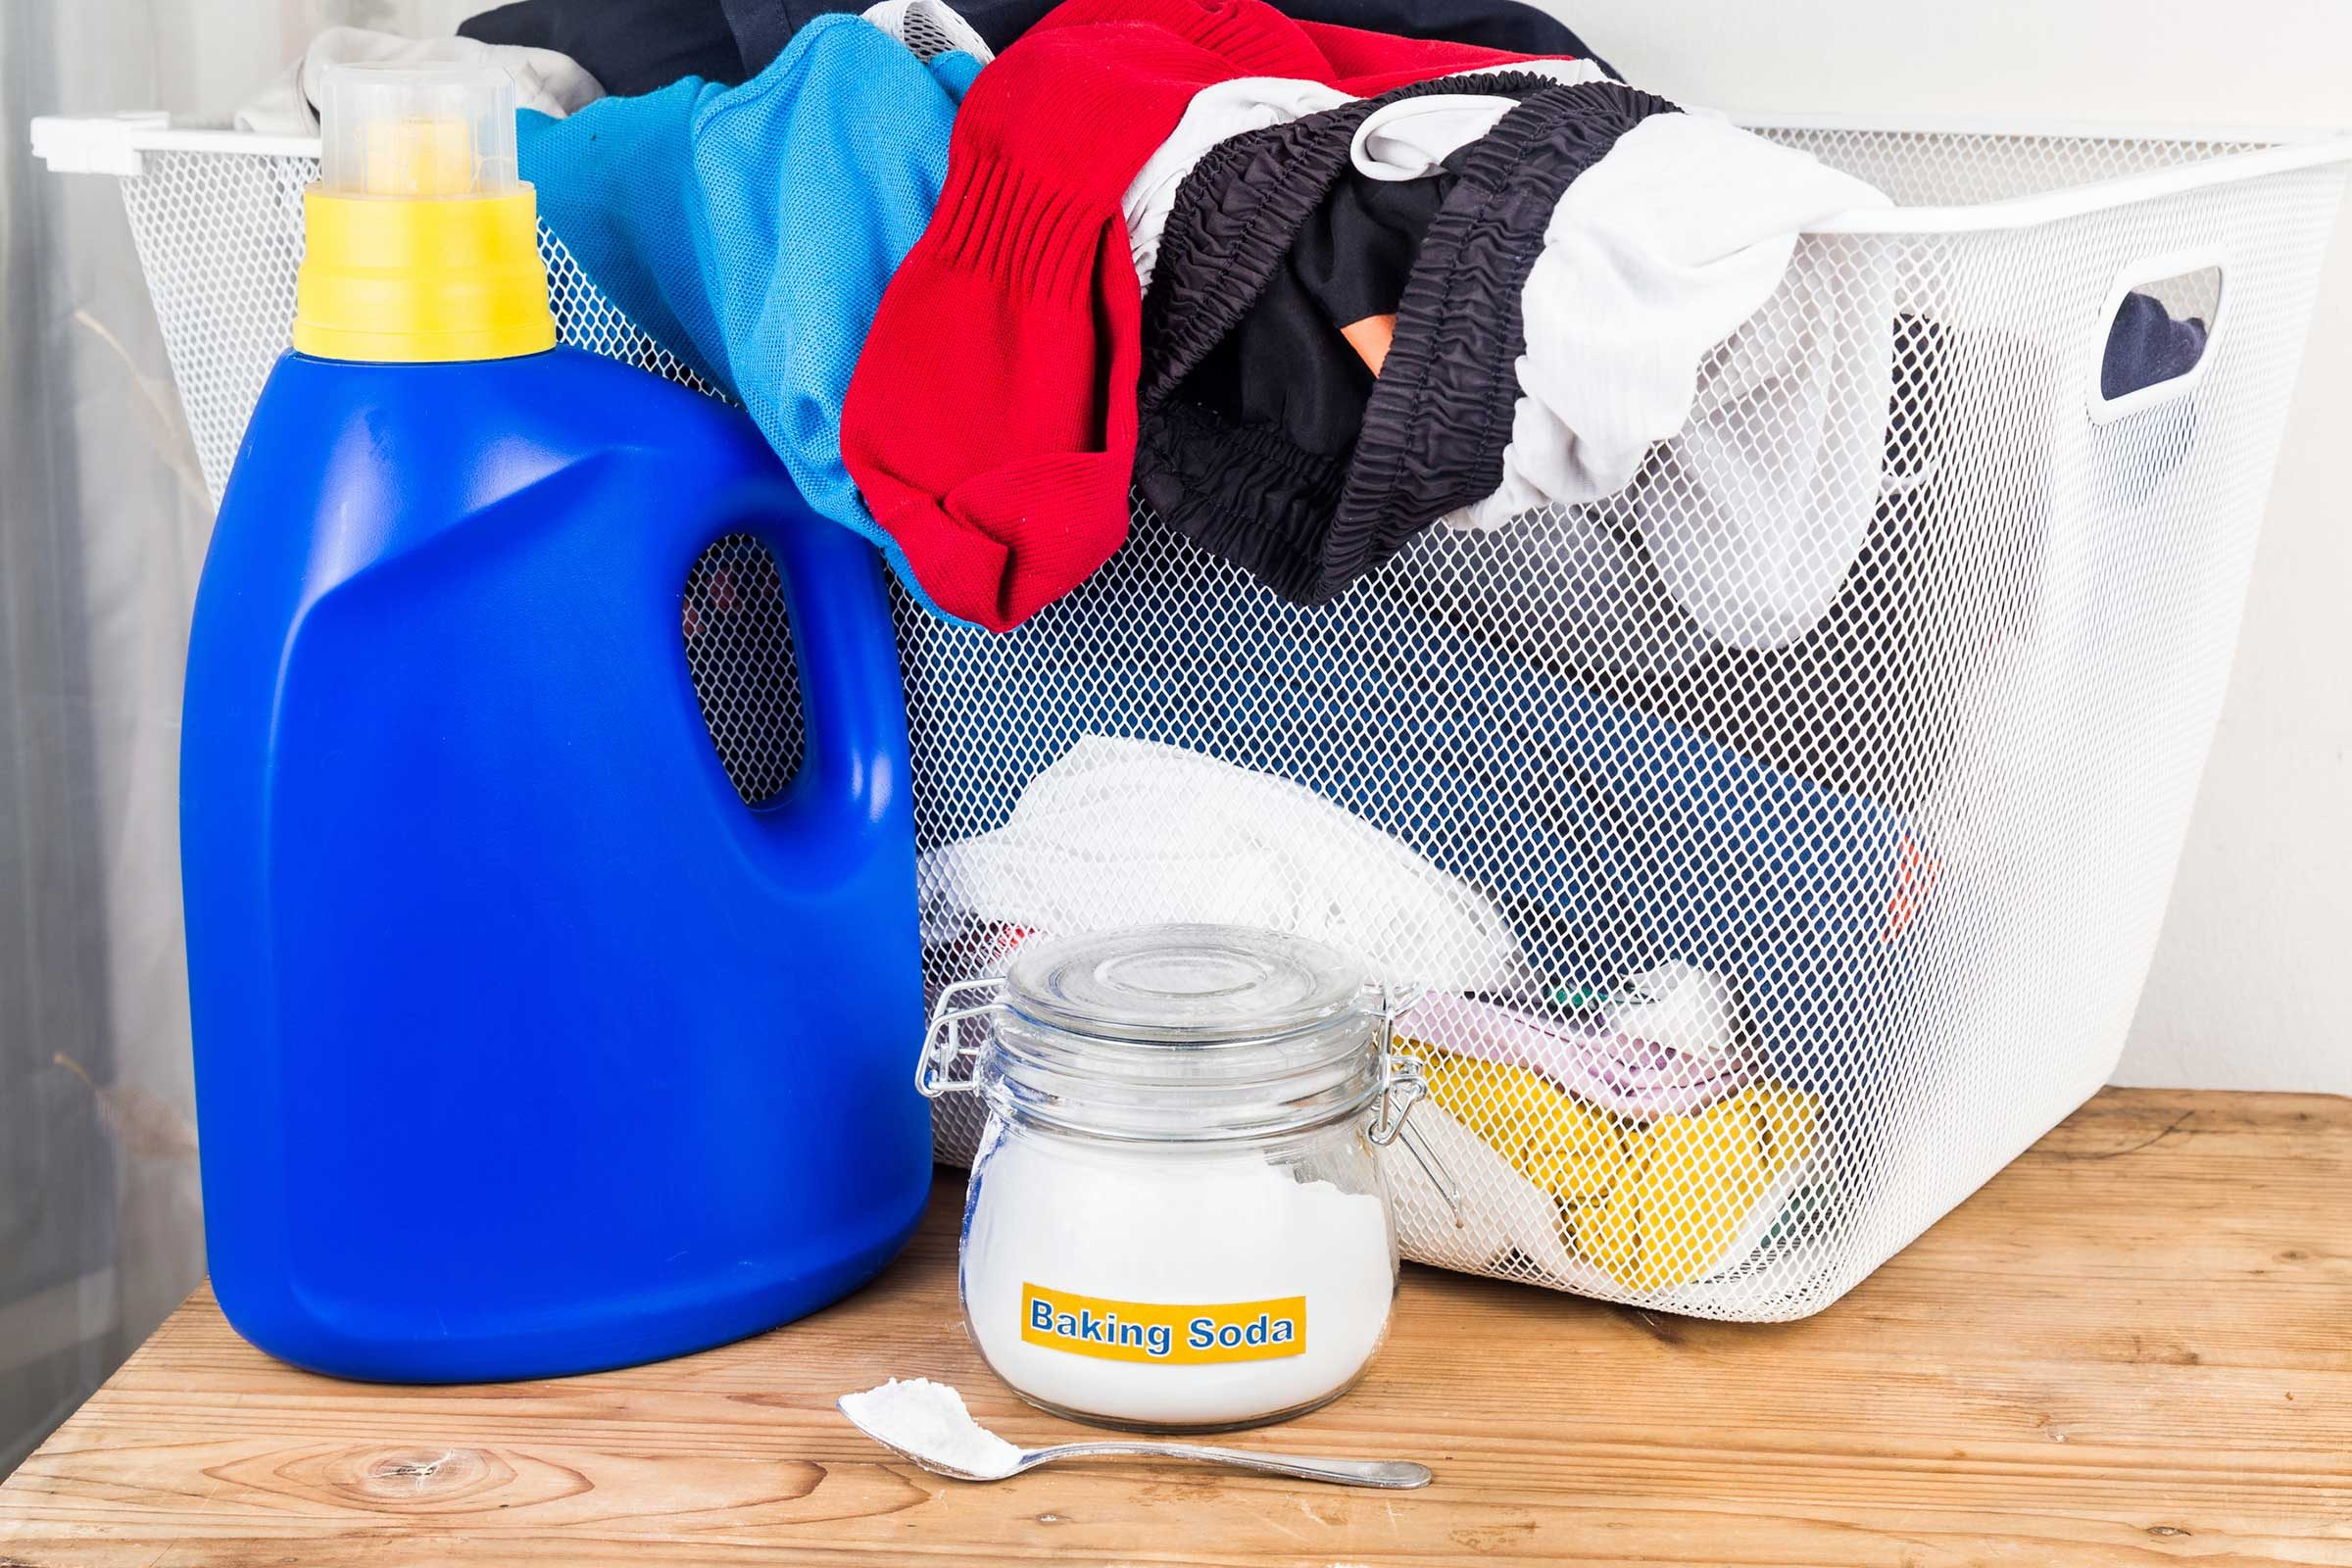 Best Baking Soda And Vinegar Cleaning Solutions Reader S Digest